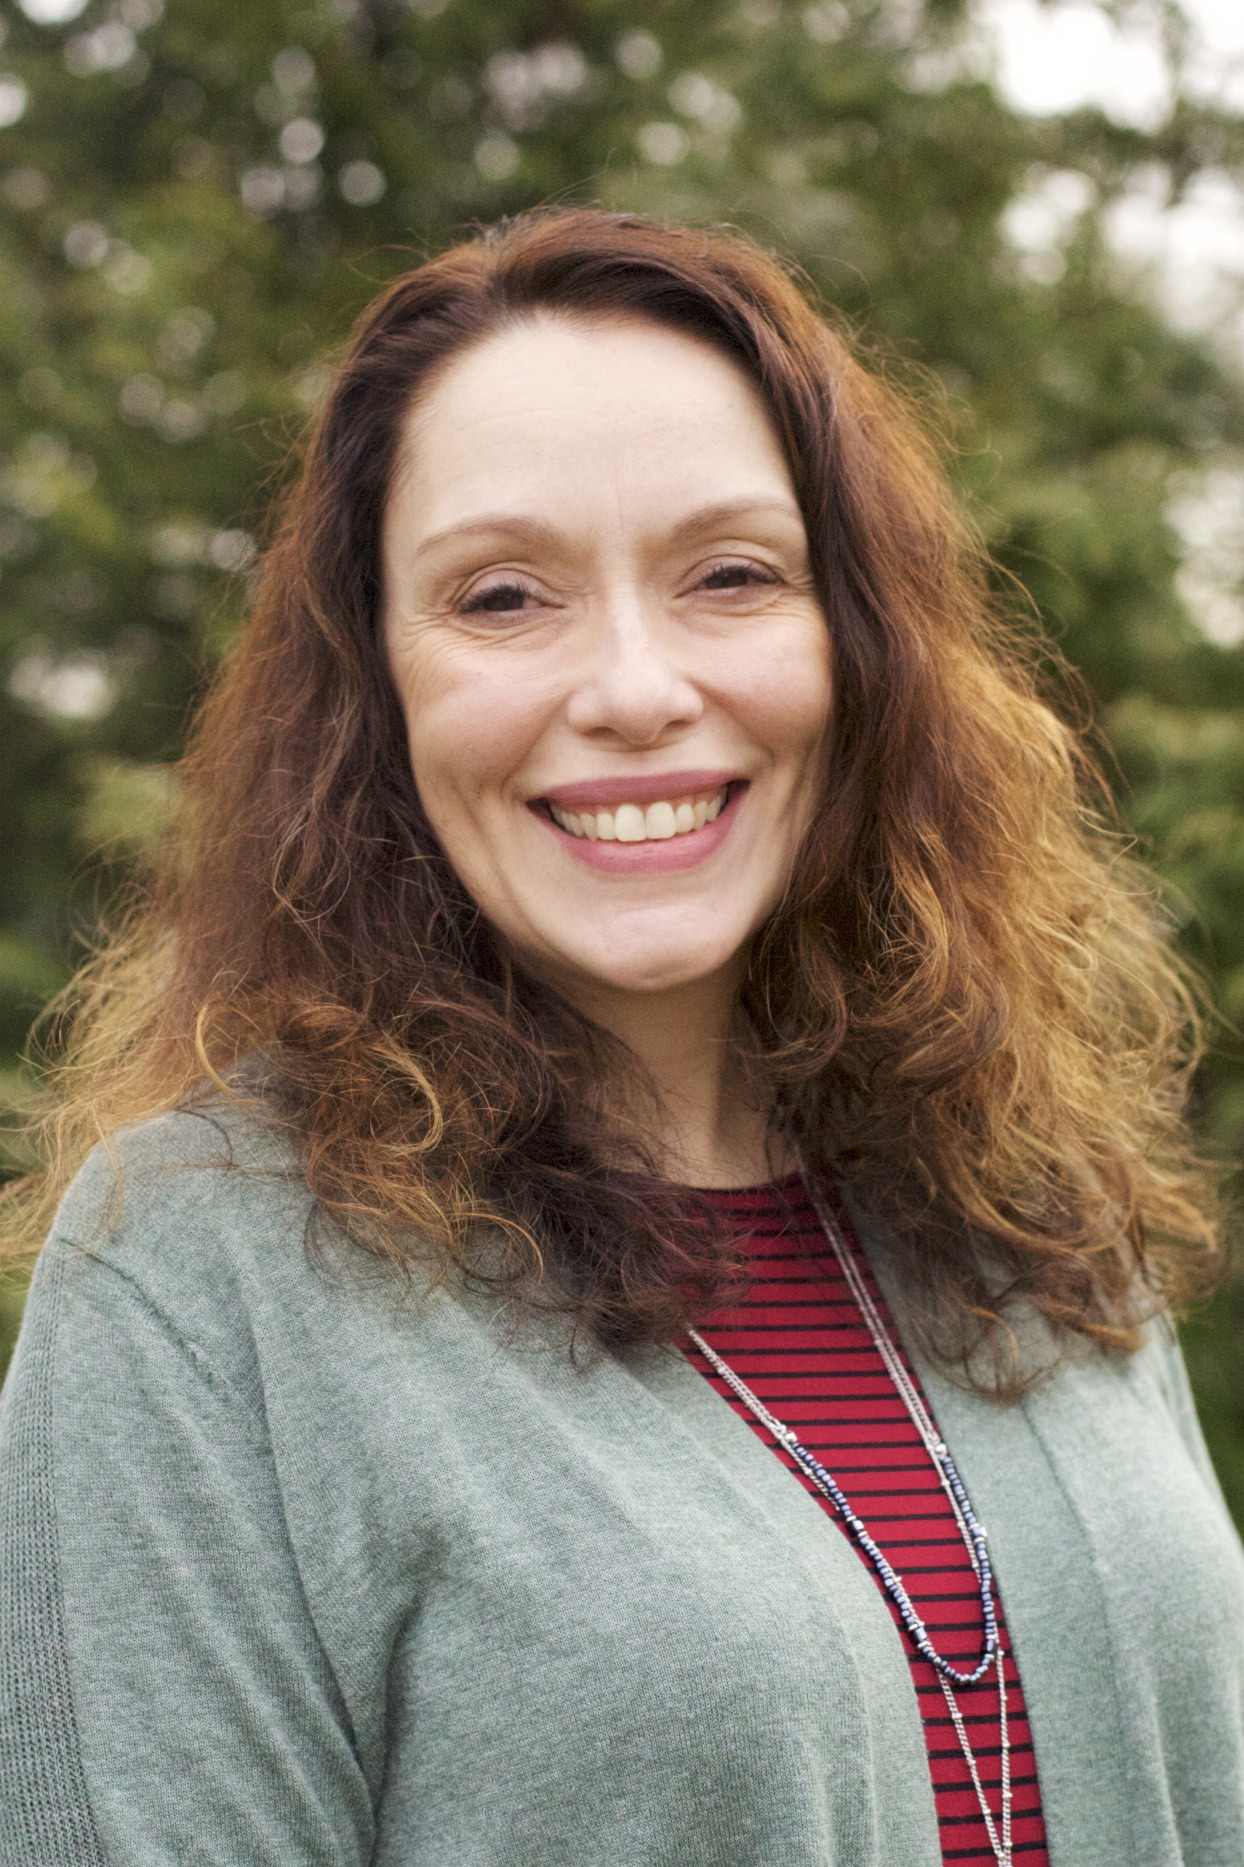 wendy naiman, MA, lmft, therapist   ∙Children & Adolescents (Ages 10-18) ∙Parenting ∙Family of Origin Issues ∙LGBTQ+ Issues ∙Anxiety ∙Depression ∙Transitions & Adjustments ∙Relationships ∙Creative & Expressive Arts